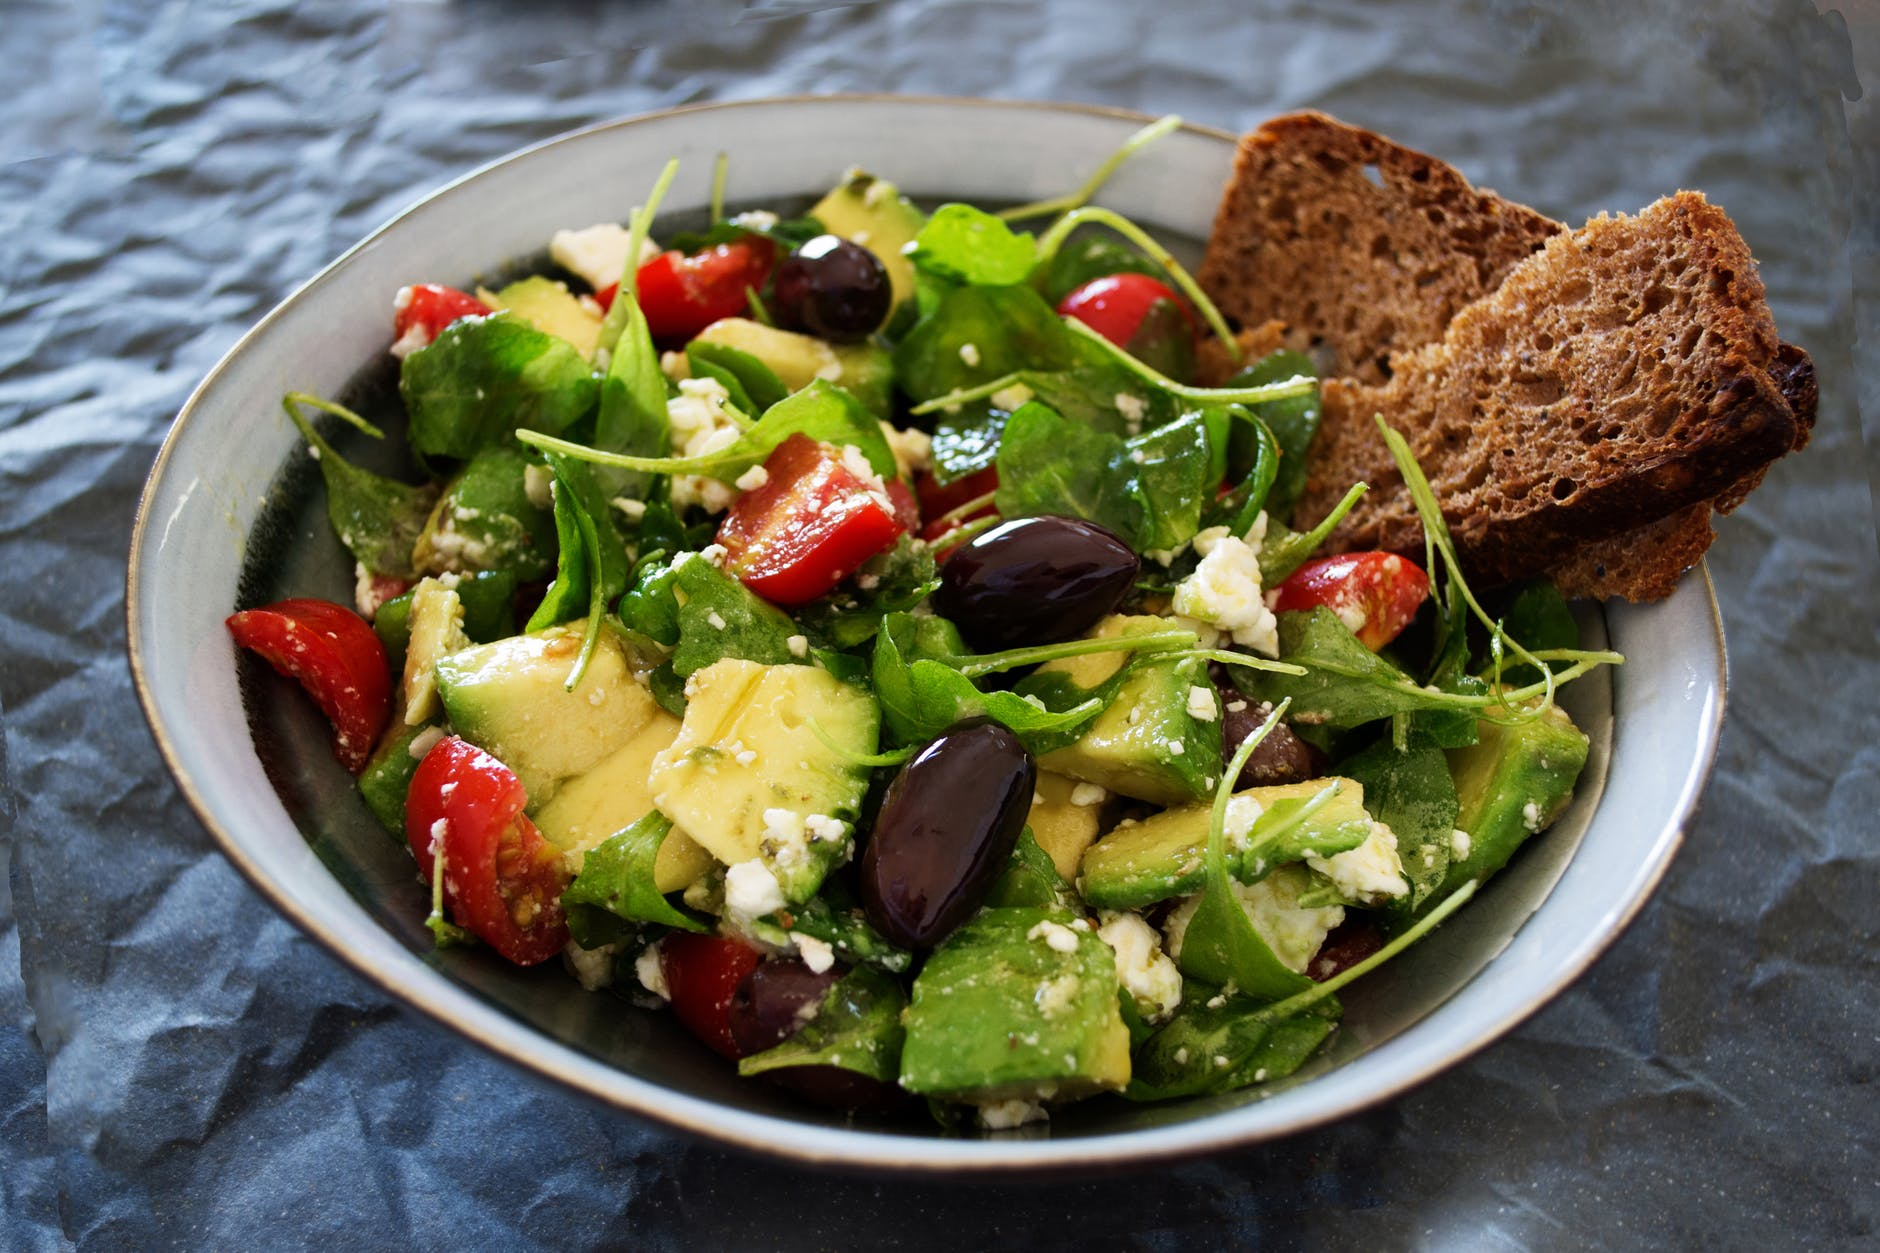 vegetable salad with wheat bread on the side